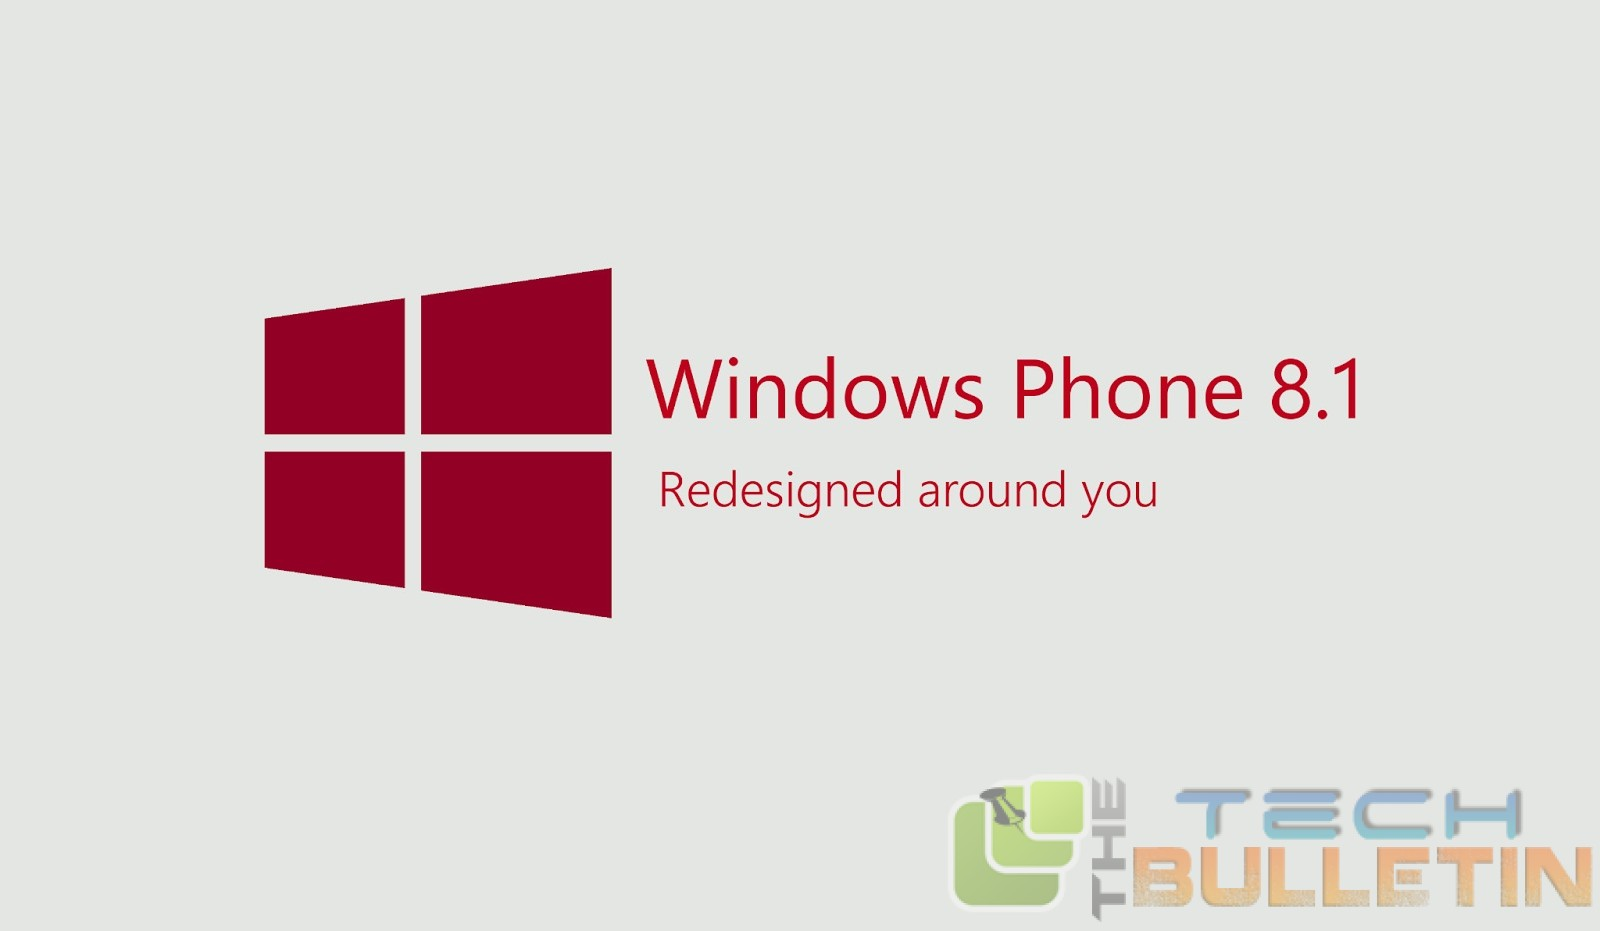 WindowsPhone8.1